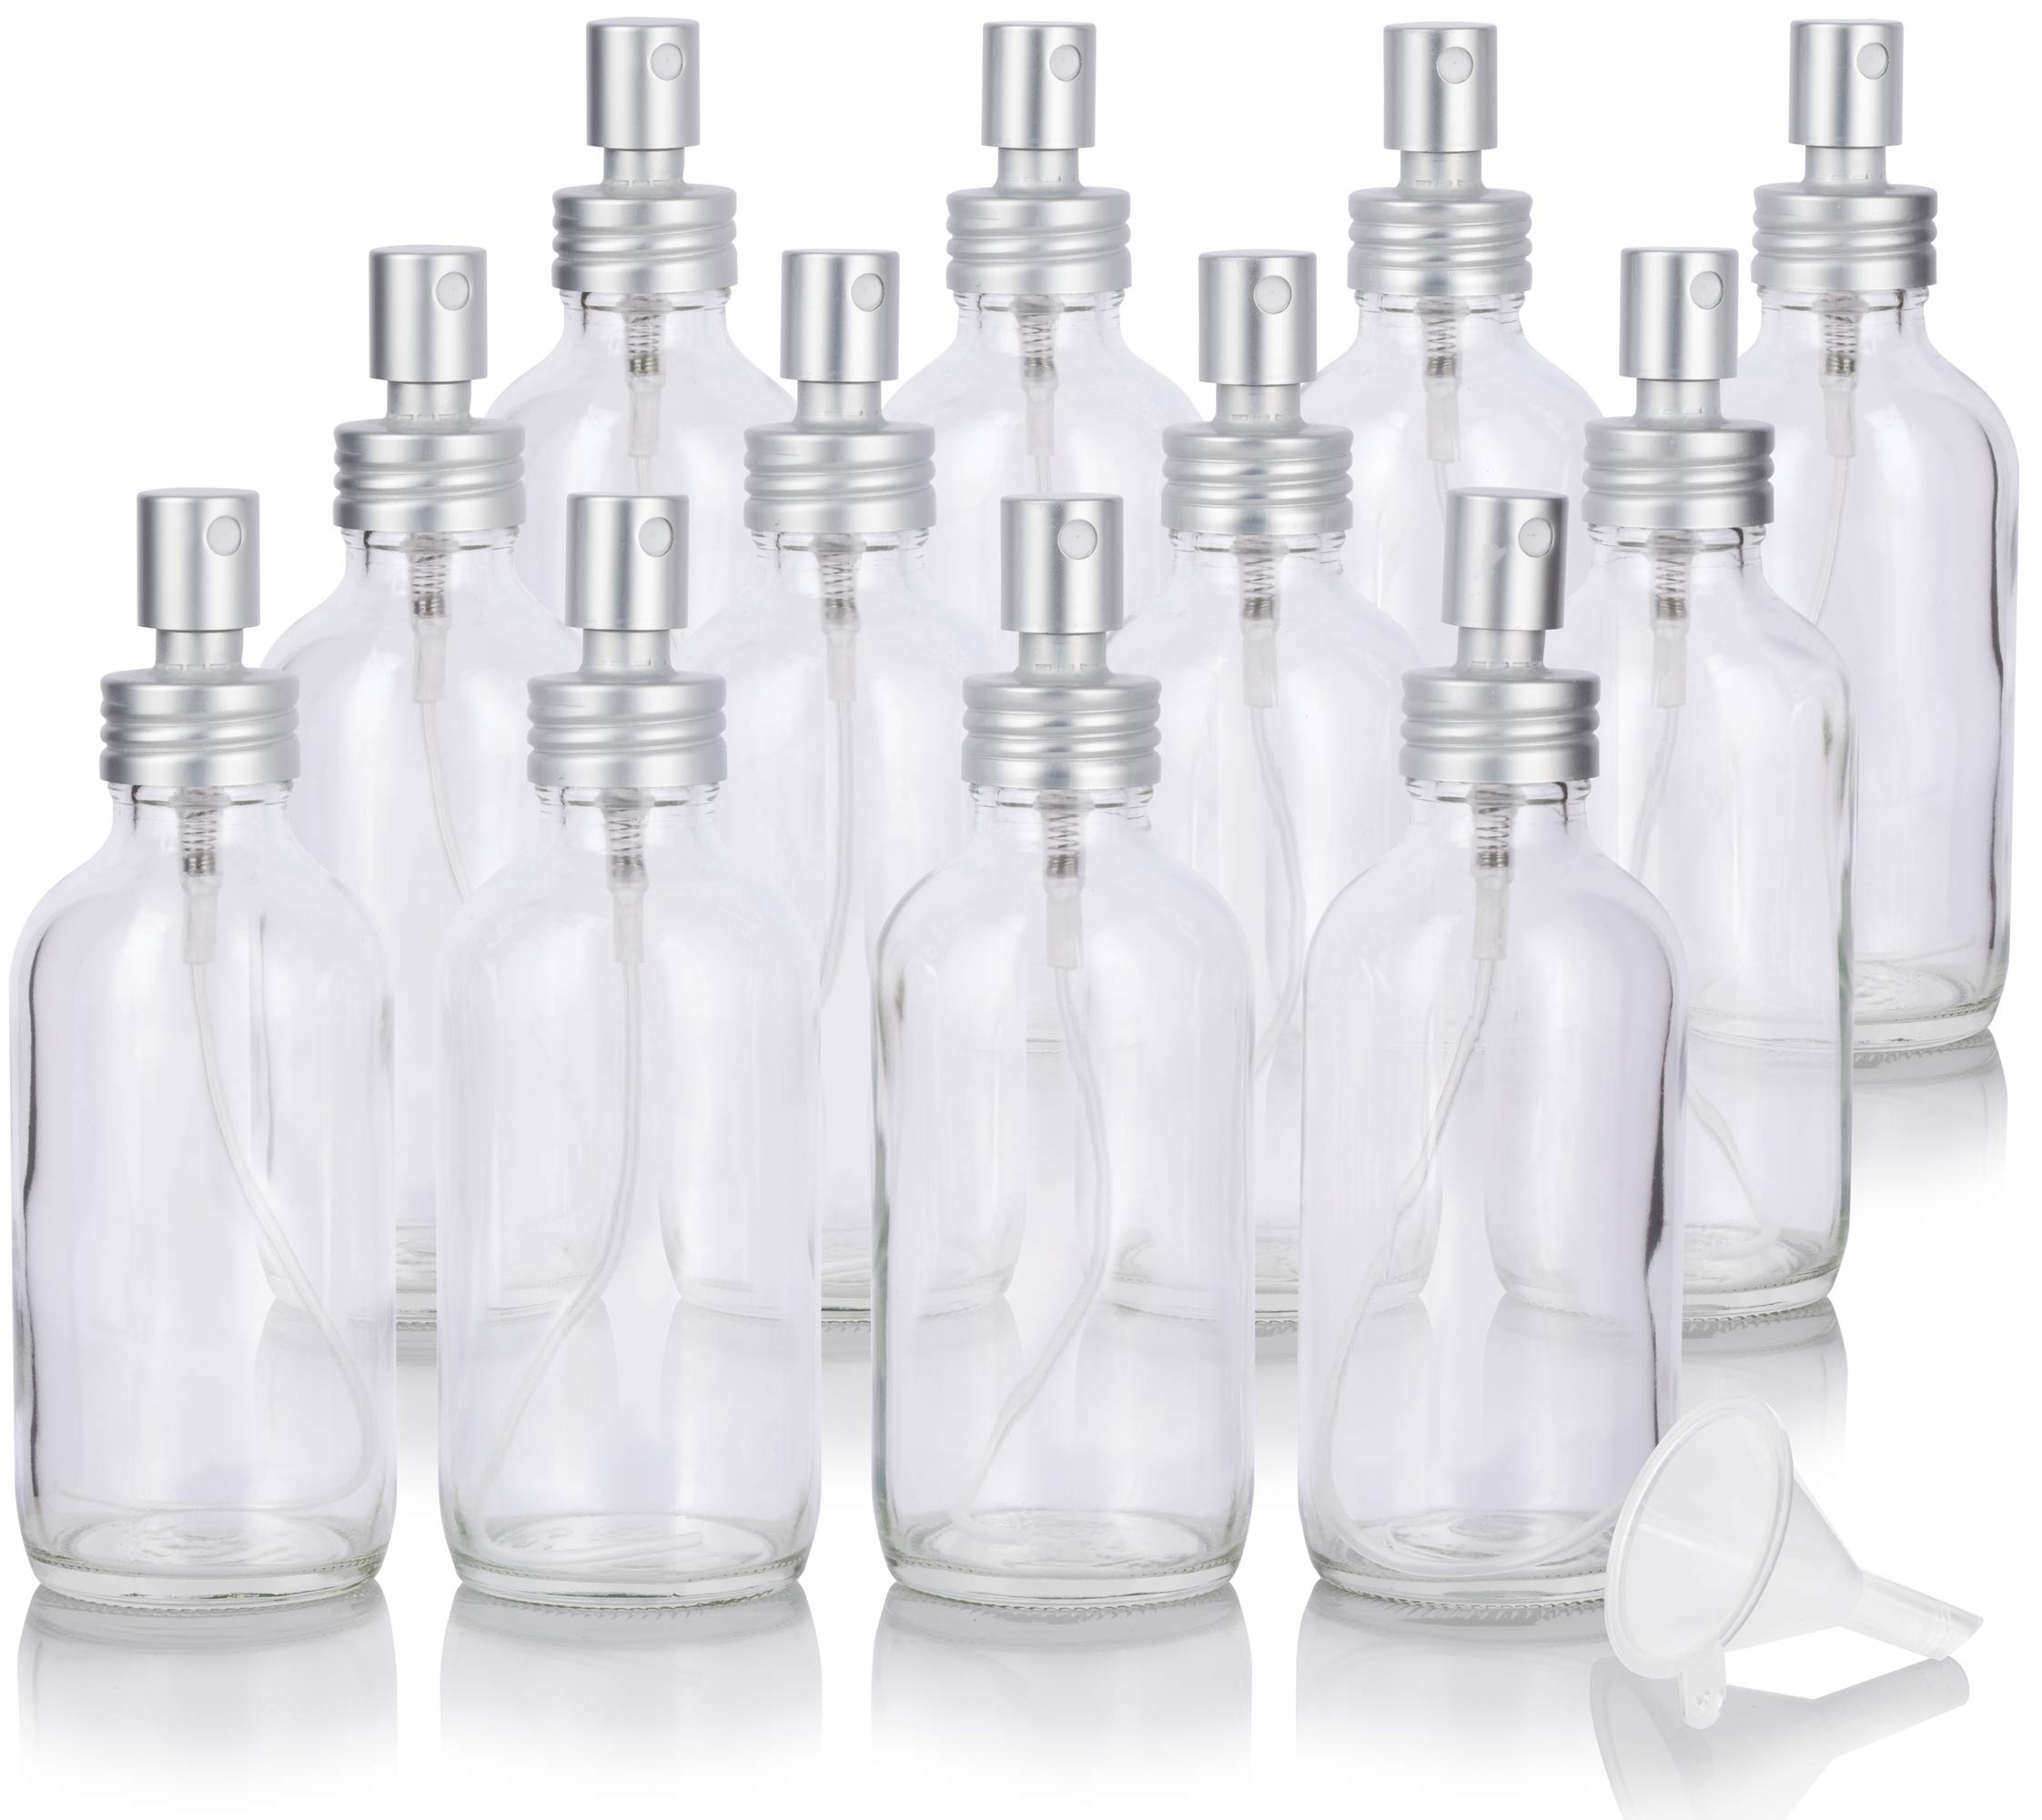 4 oz Clear Glass Boston Round Bottle with Metal Aluminum Fine Mist Sprayer (12 Pack) + Funnel by JUVITUS